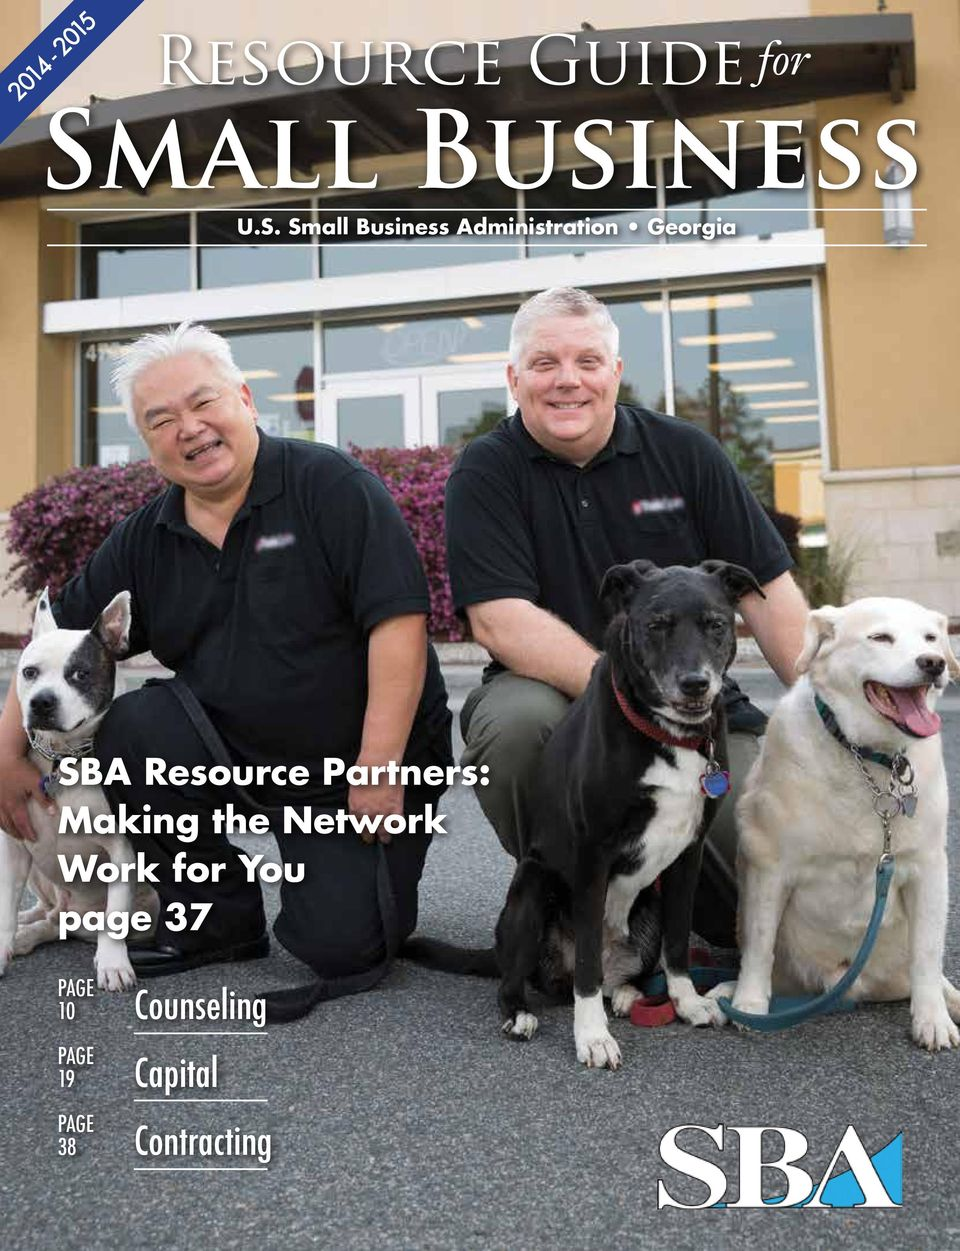 Small Business Administration Georgia SBA Resource